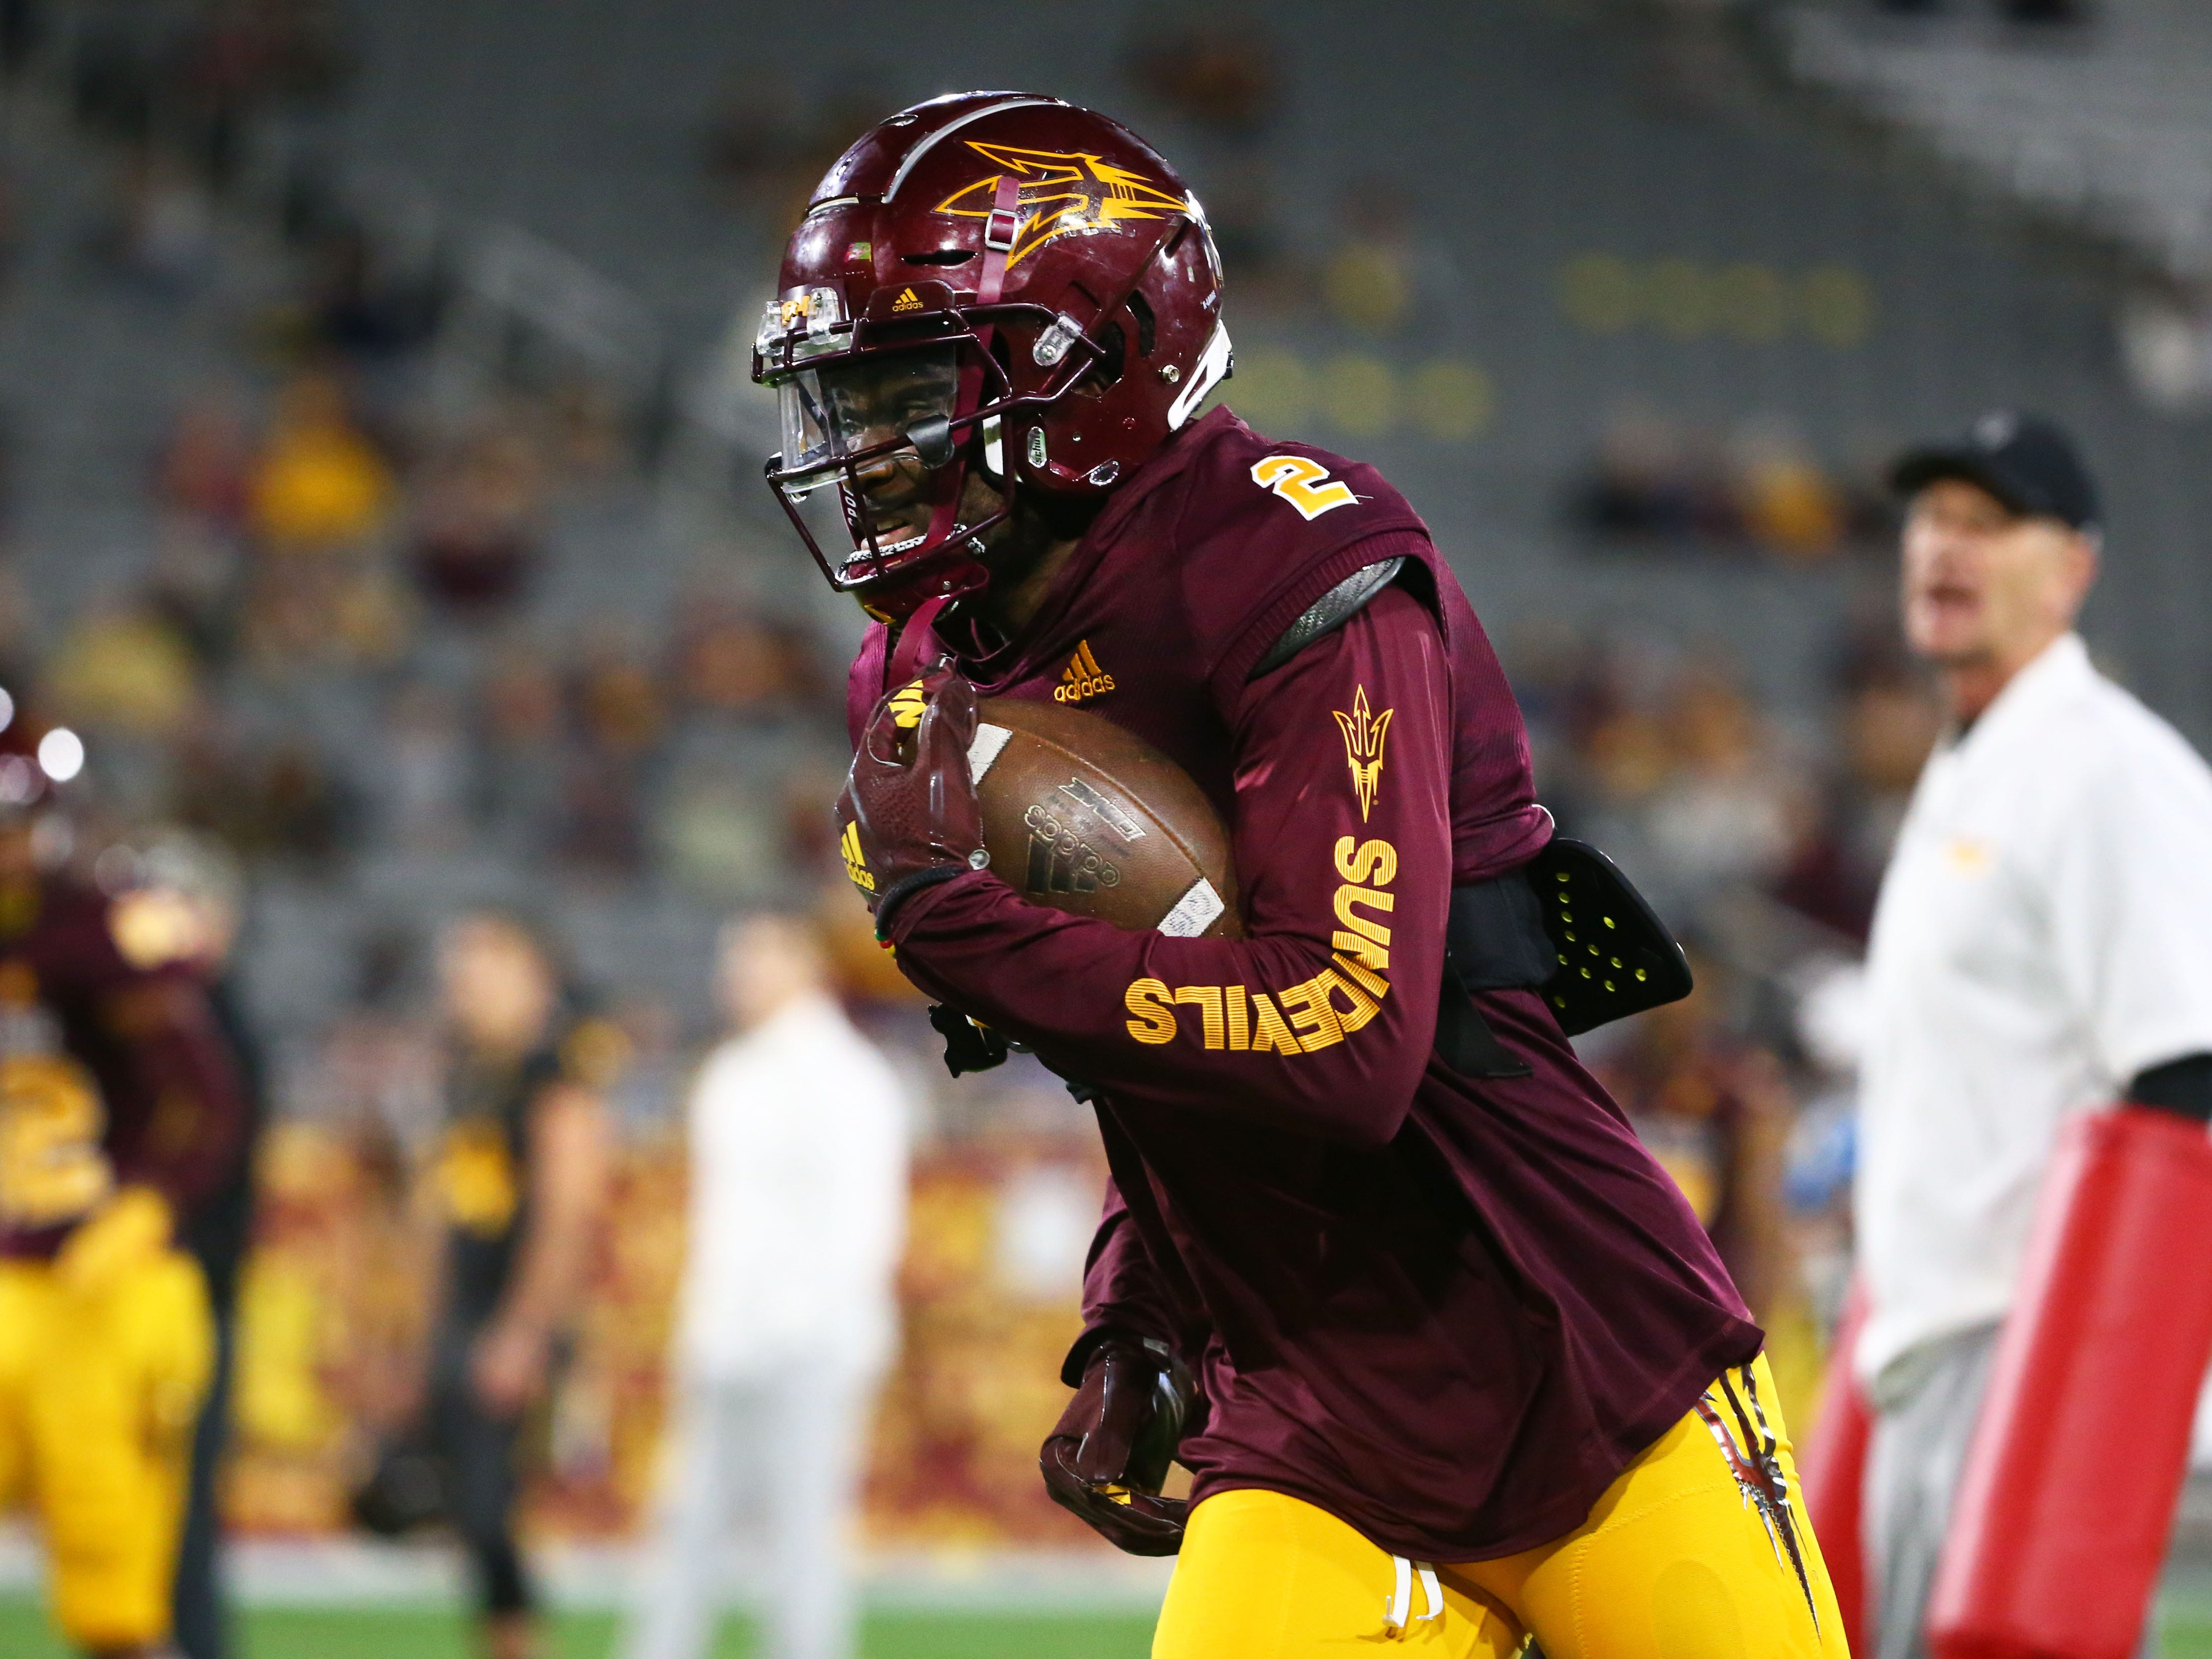 Arizona State wide receiver Brandon Aiyuk (2) during the spring practice game on Feb. 28, 2019 at Sun Devil Stadium in Tempe, Ariz.